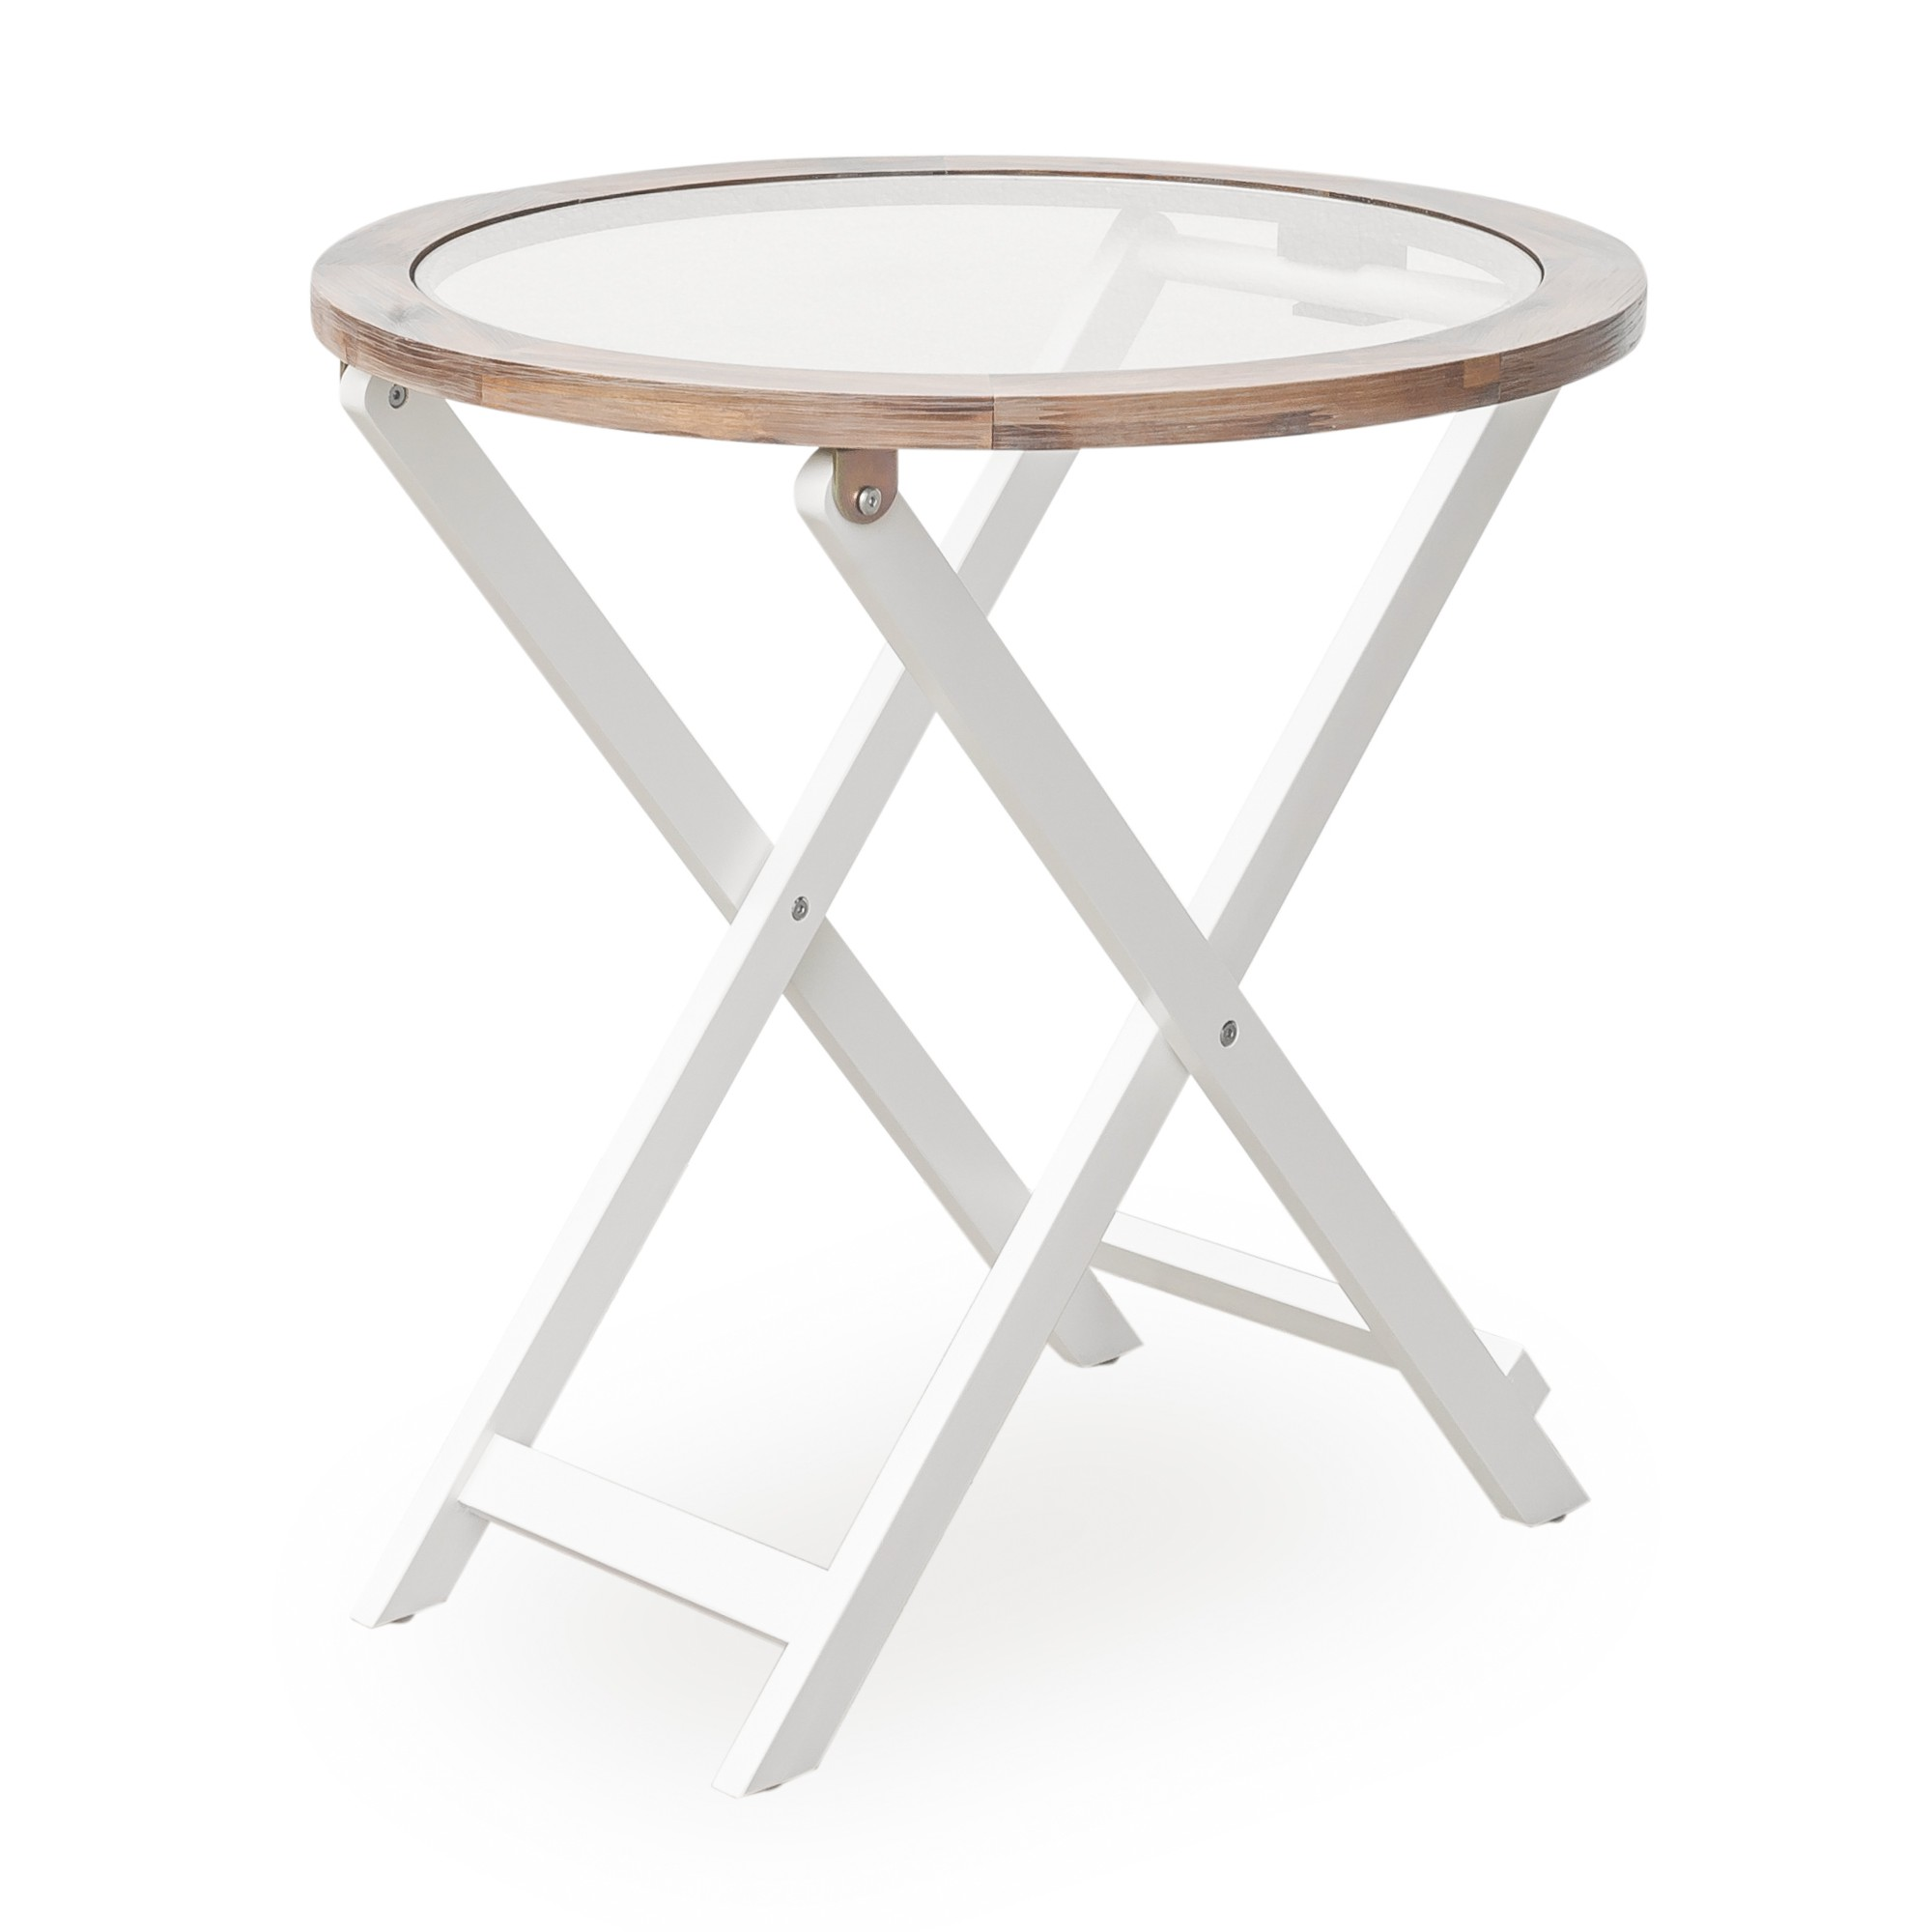 Palm Harbour Round Table by OneWorld Collection, a Side Table for sale on Style Sourcebook